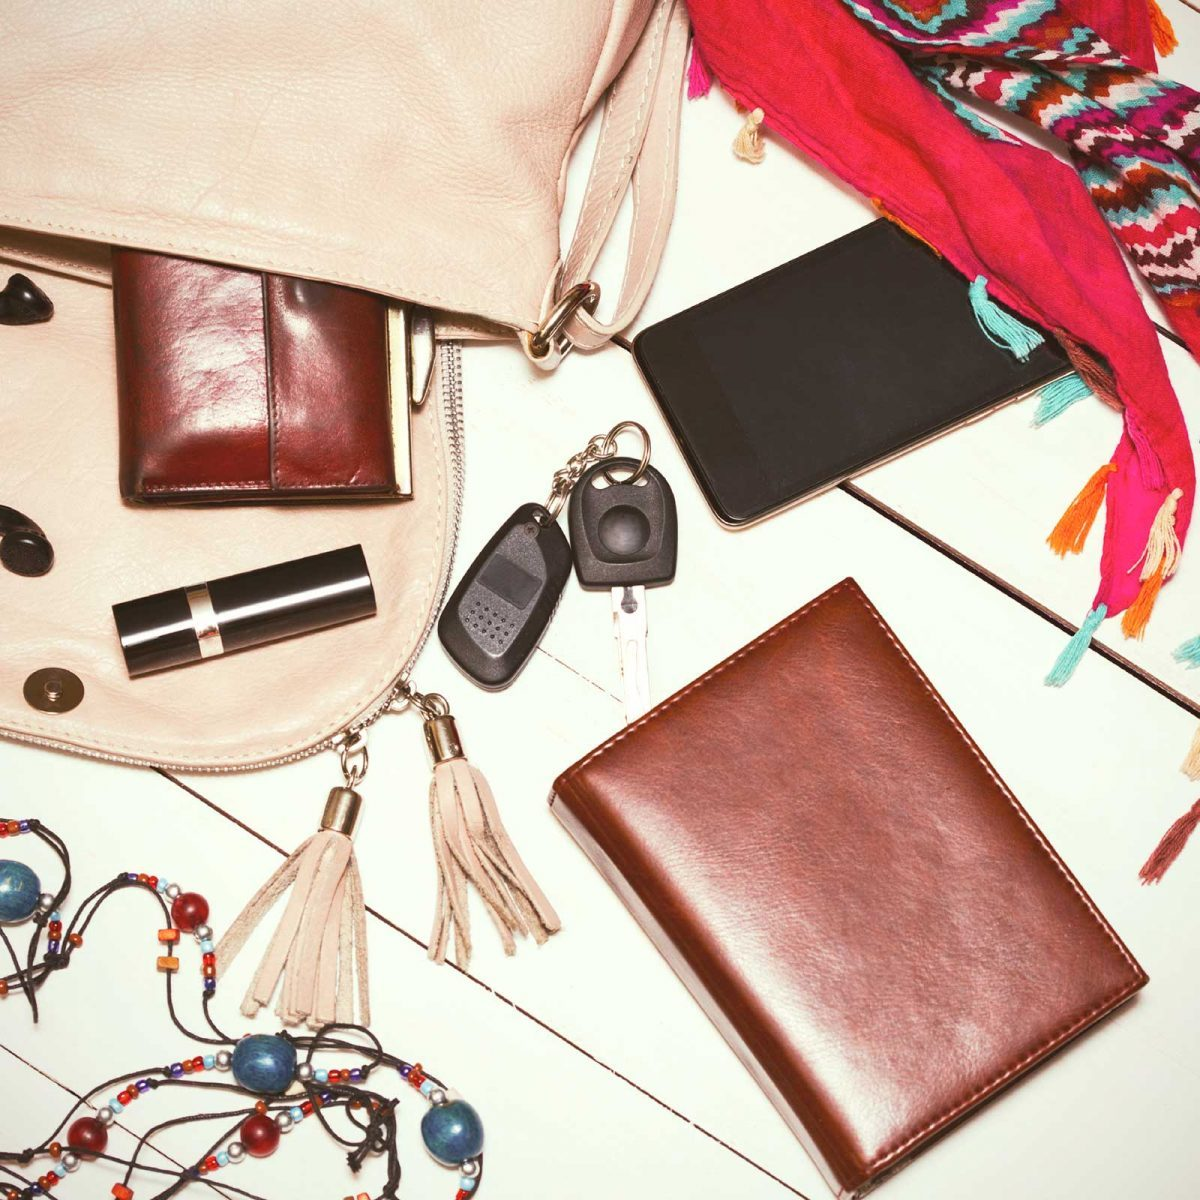 5130baebd32 Items You Shouldn't Carry in Your Purse | Reader's Digest